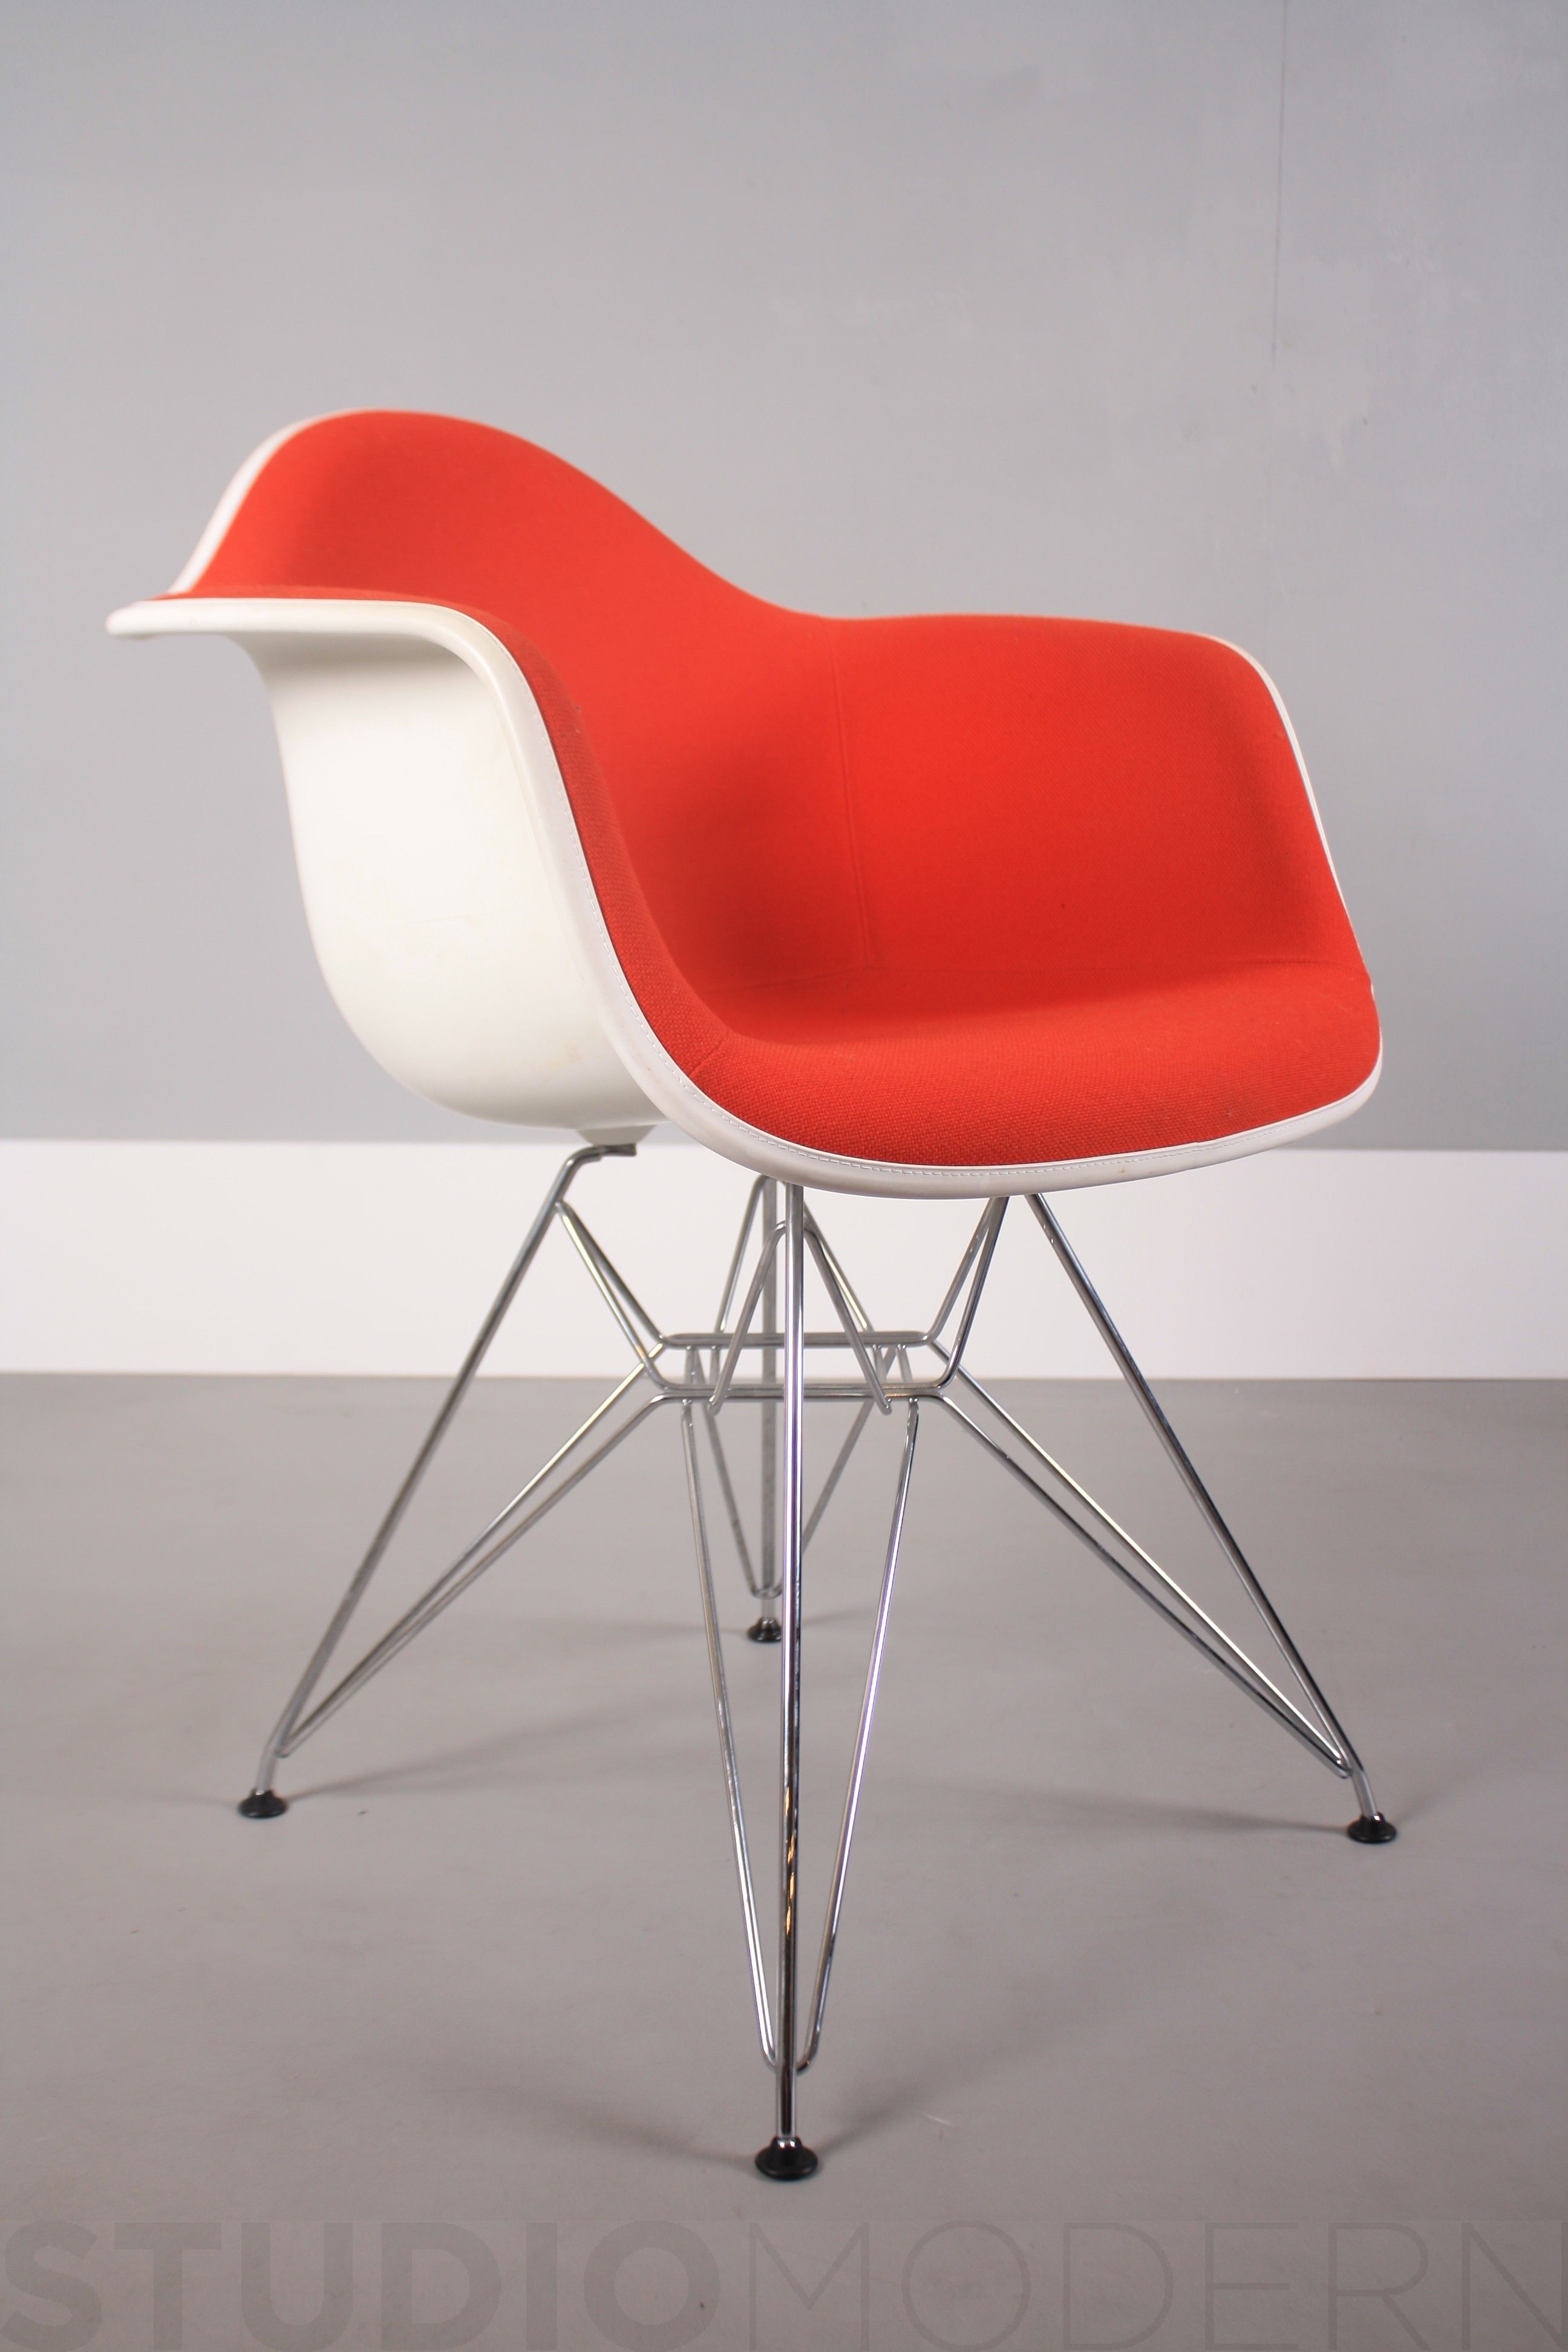 Vitra Charles & Ray Eames Dar Red Hopsack Eames